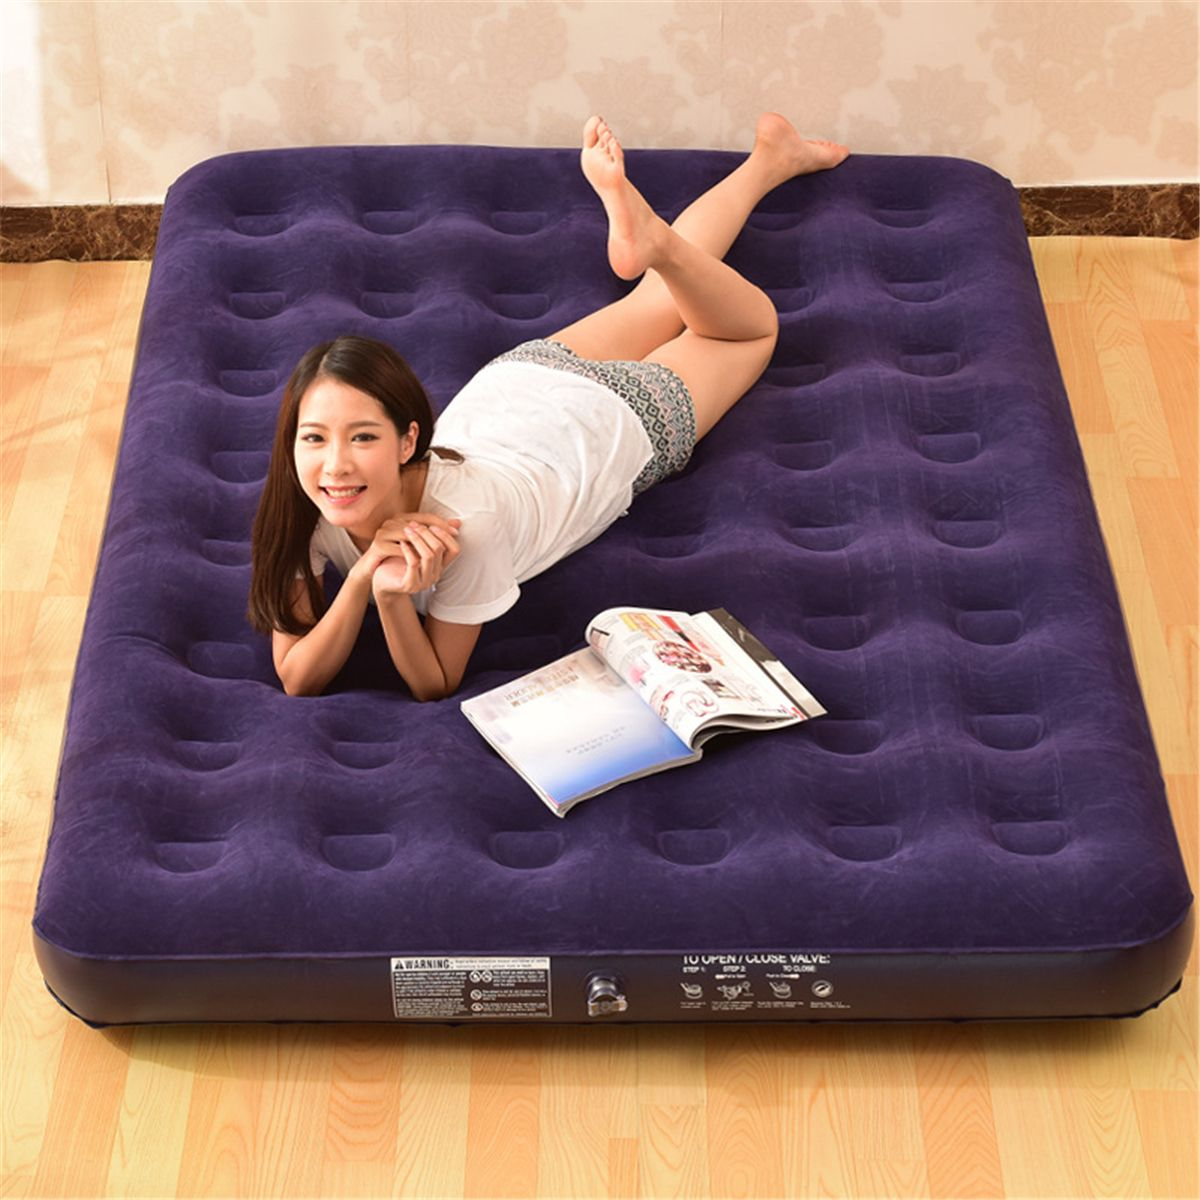 Ez Inflate Suede Airbed Mattress With Builtin Battery Powered Dry Cell Pump Queen Easy For Travel And Storage More I Air Bed Dry Cell Air Mattress Camping